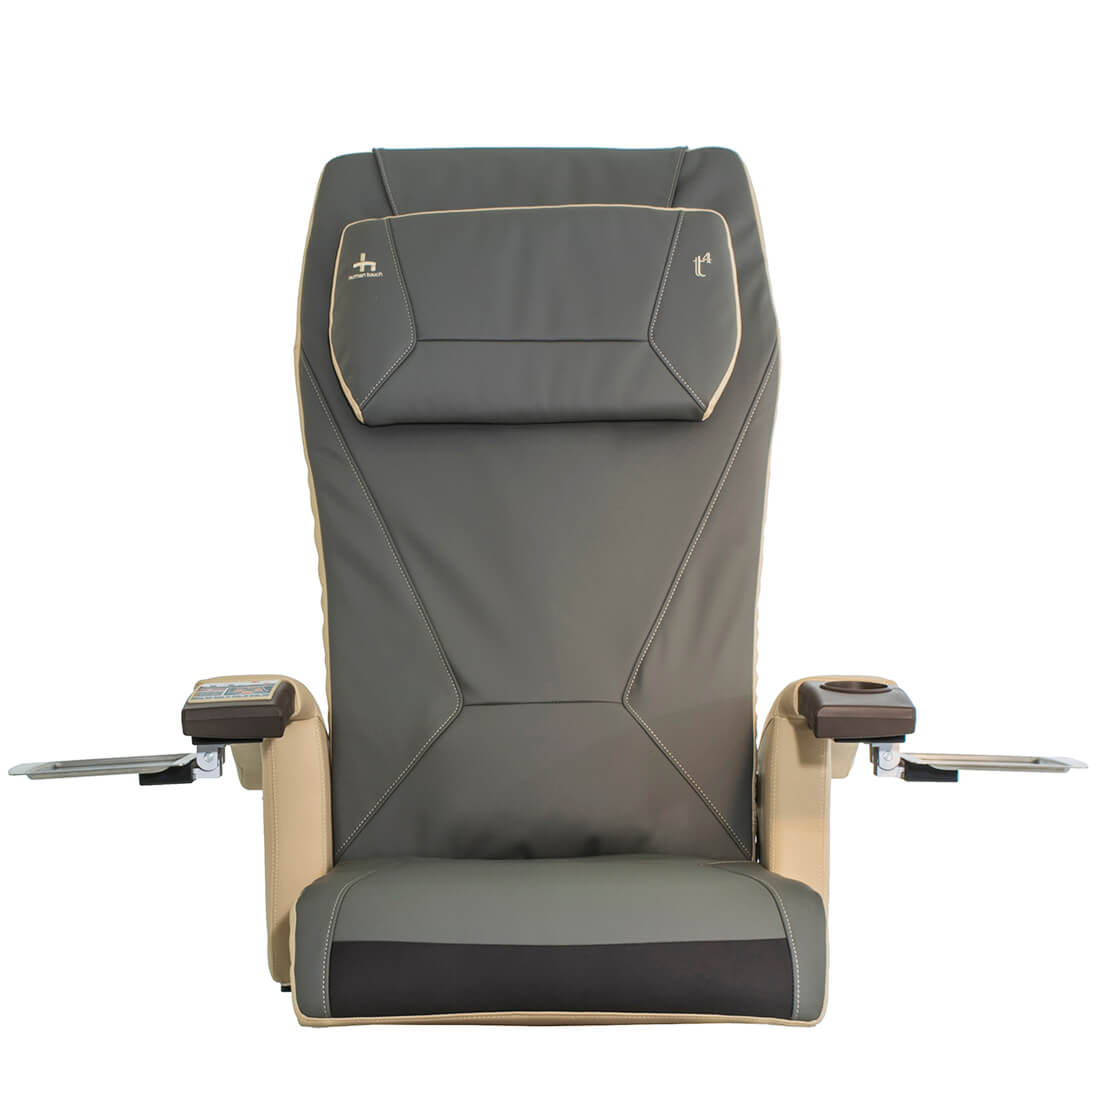 HTxT4 Massage Chair Gray